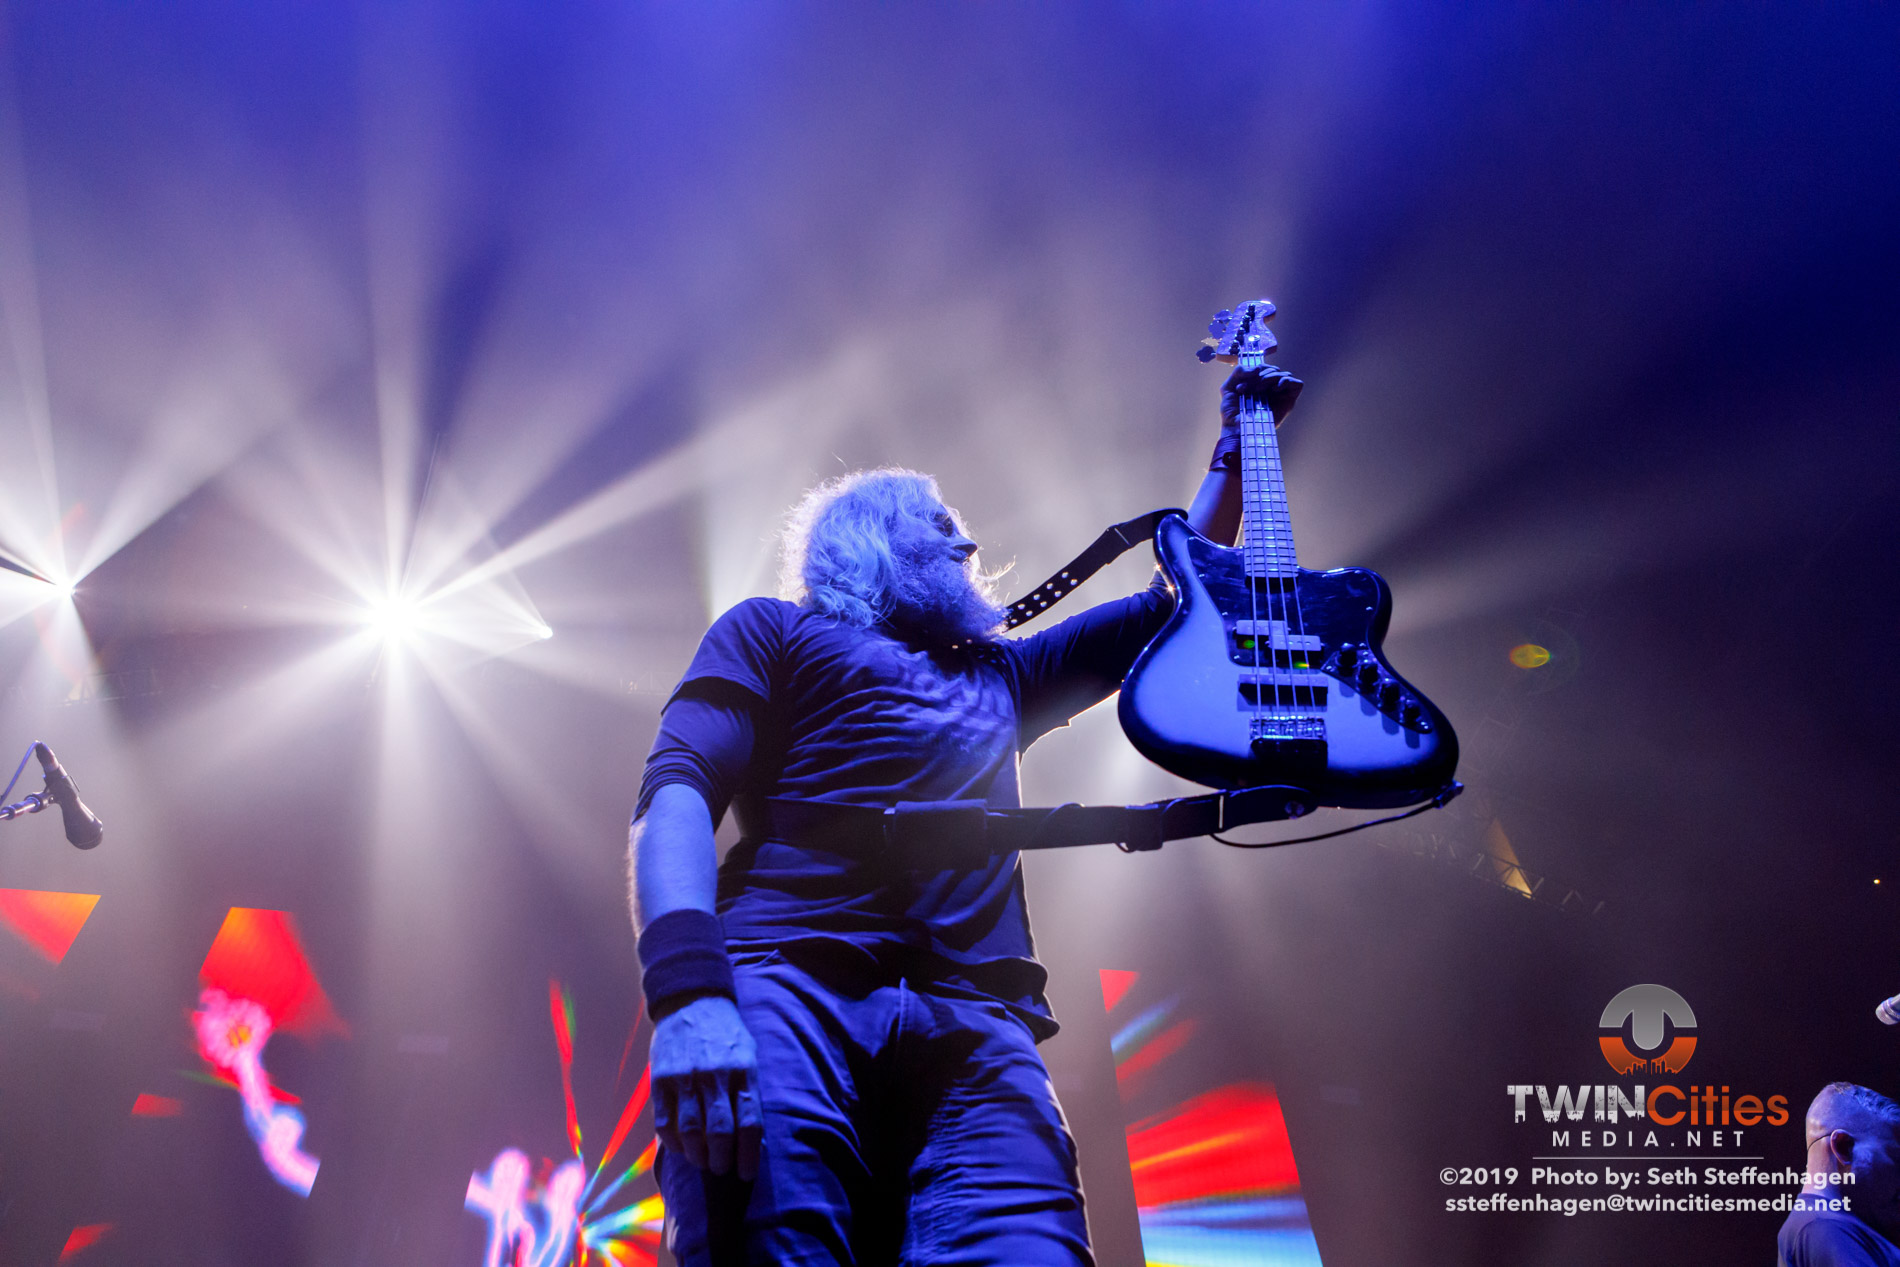 June 15, 2019 - Minneapolis, Minnesota, United States - Mastodon live in concert at The Armory along with Coheed & Cambria and Every Time I Die.  (Photo by Seth Steffenhagen/Steffenhagen Photography)